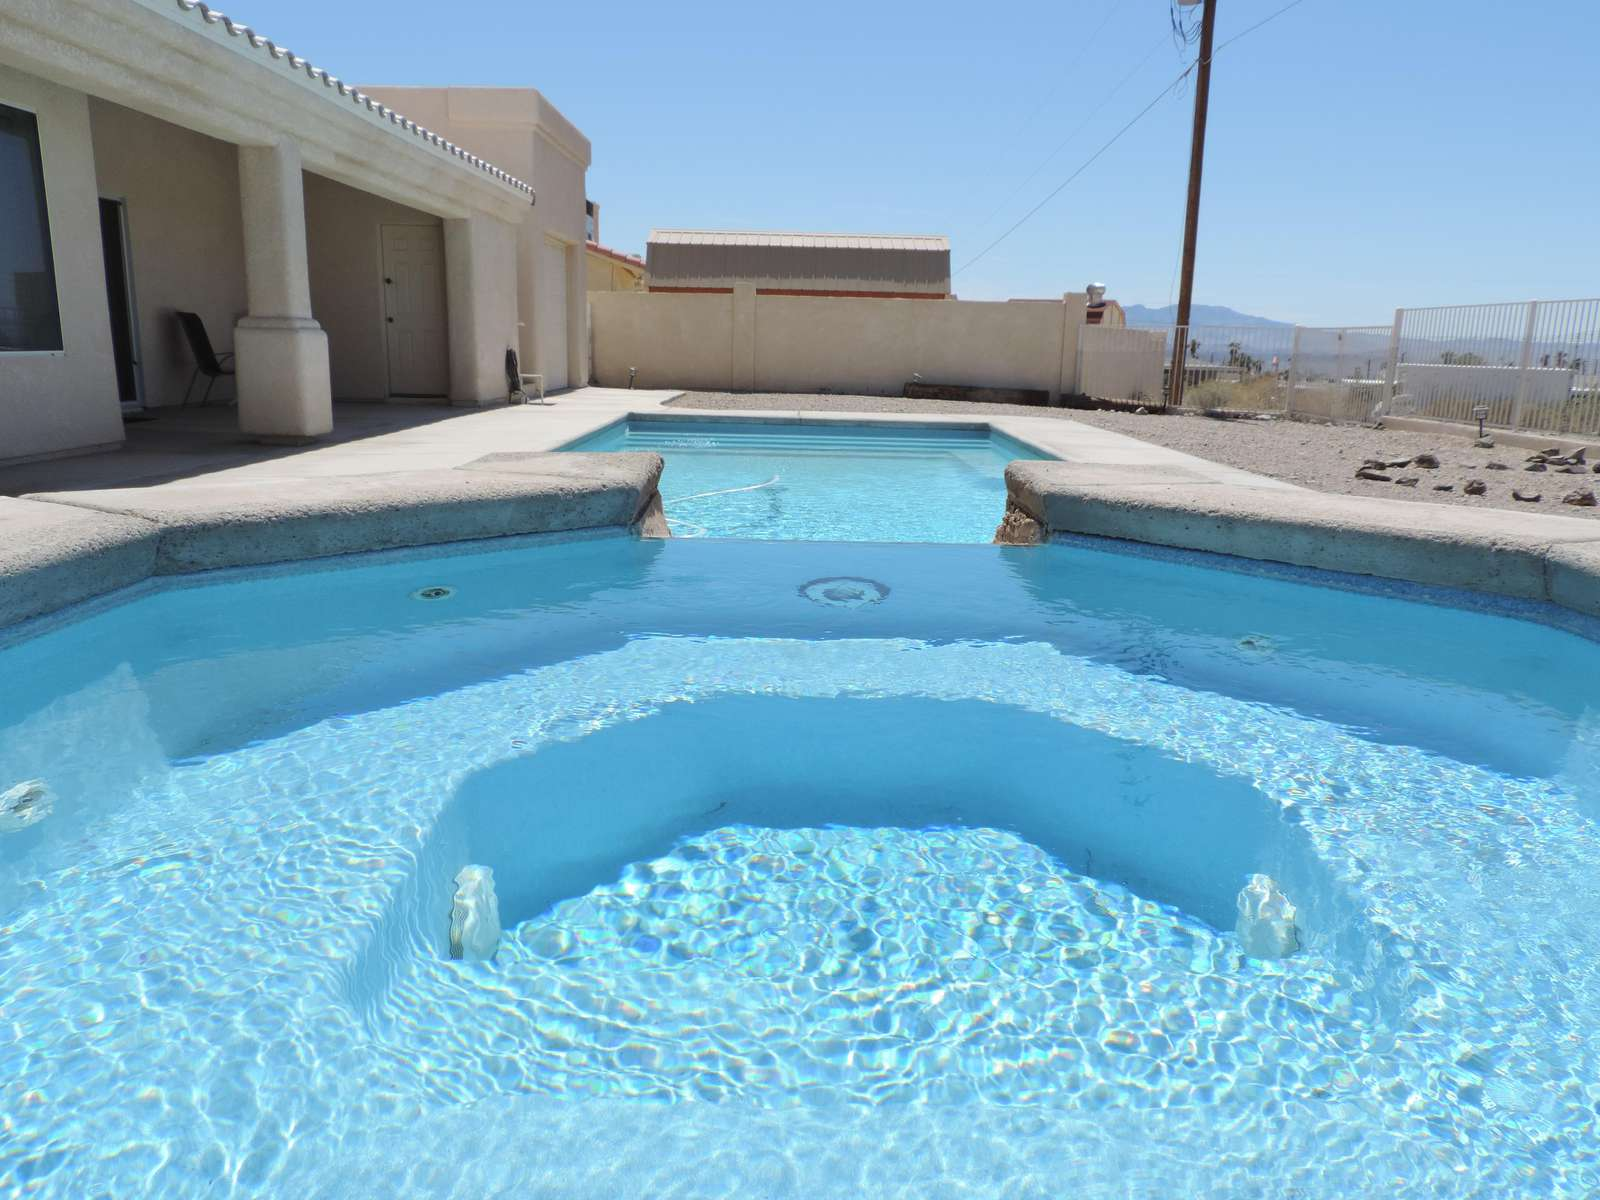 From Spa to Pool - what a view! - property